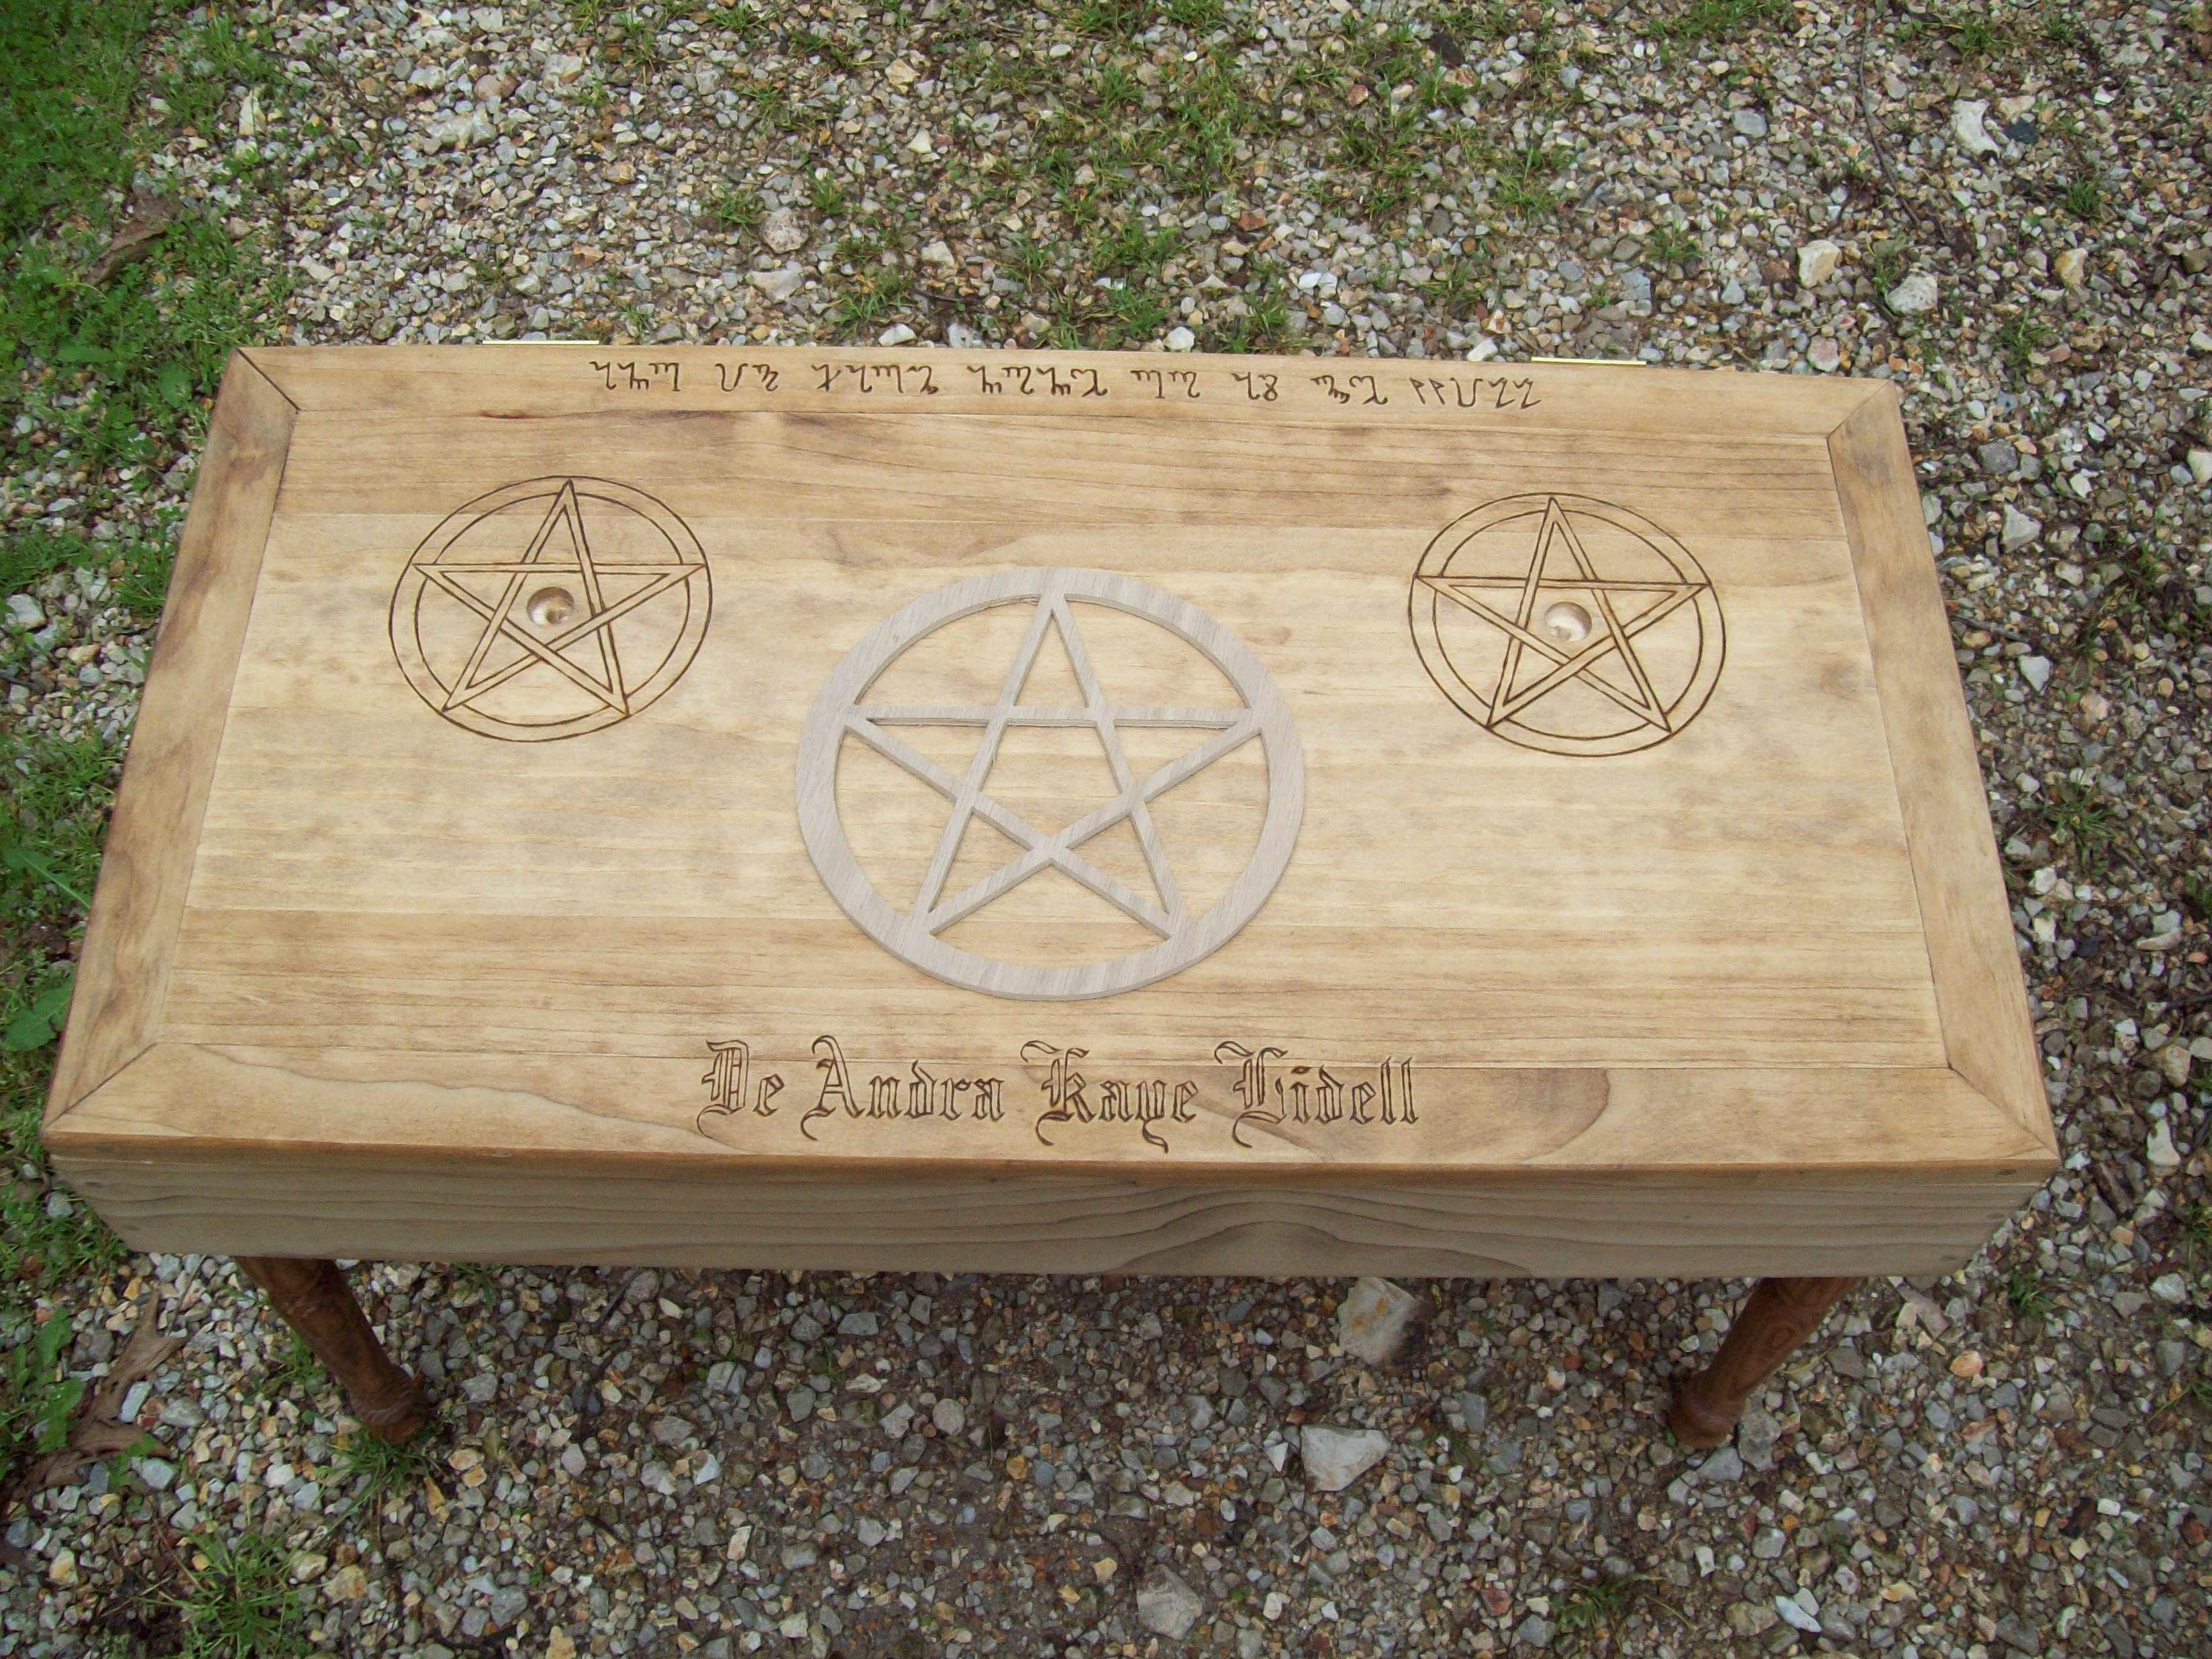 Haxon witchcraft symbols and rituals | wiccan coffee table style altar for pagan wiccan